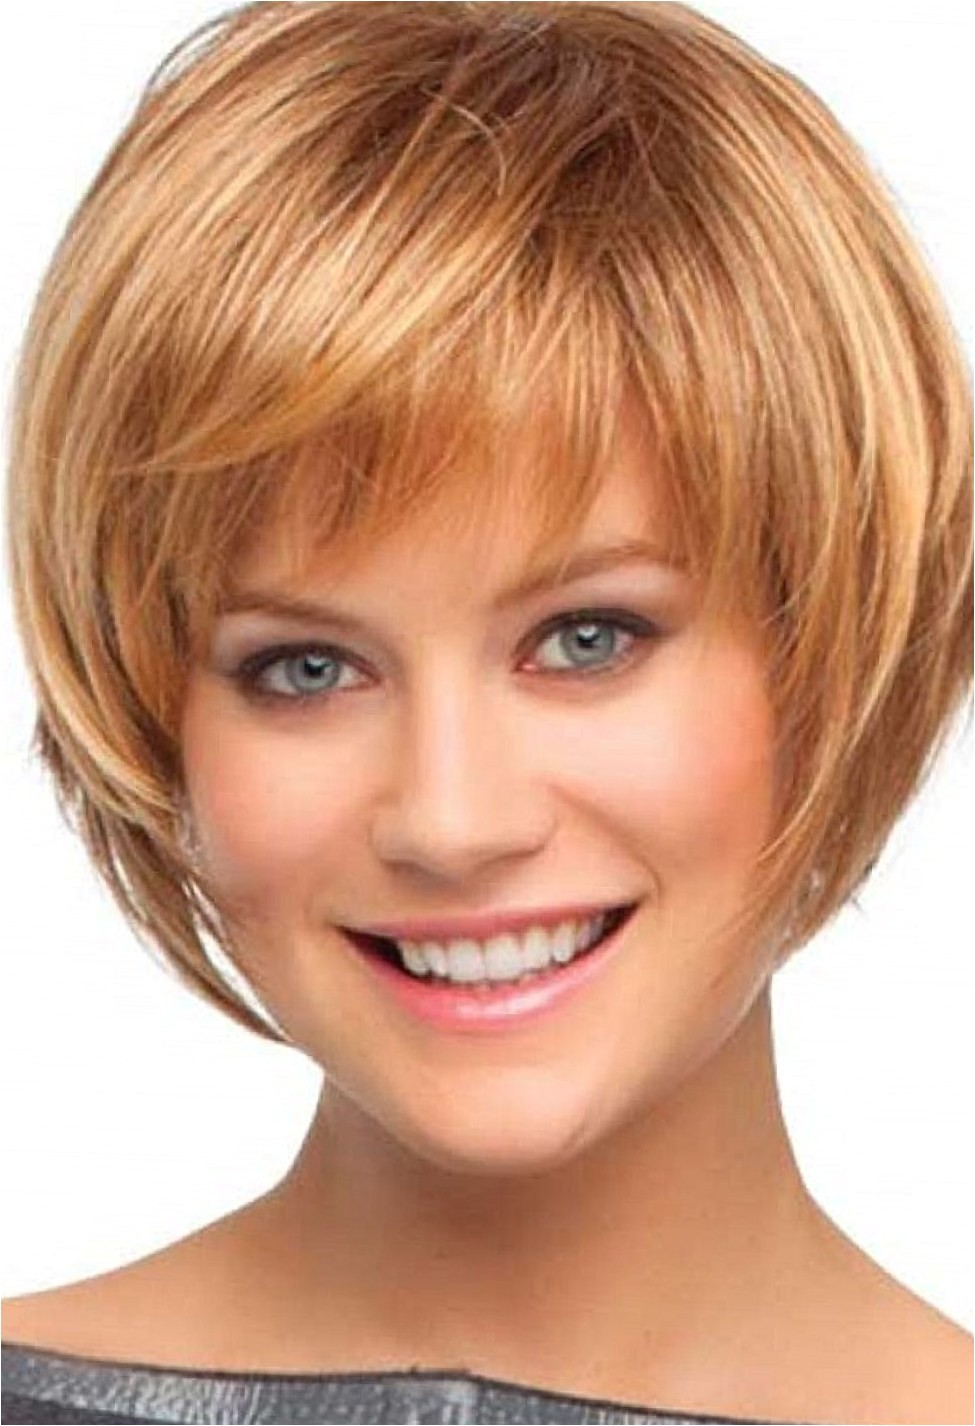 Shorter Bob Haircuts Short Bob Hairstyles with Bangs 4 Perfect Ideas for You